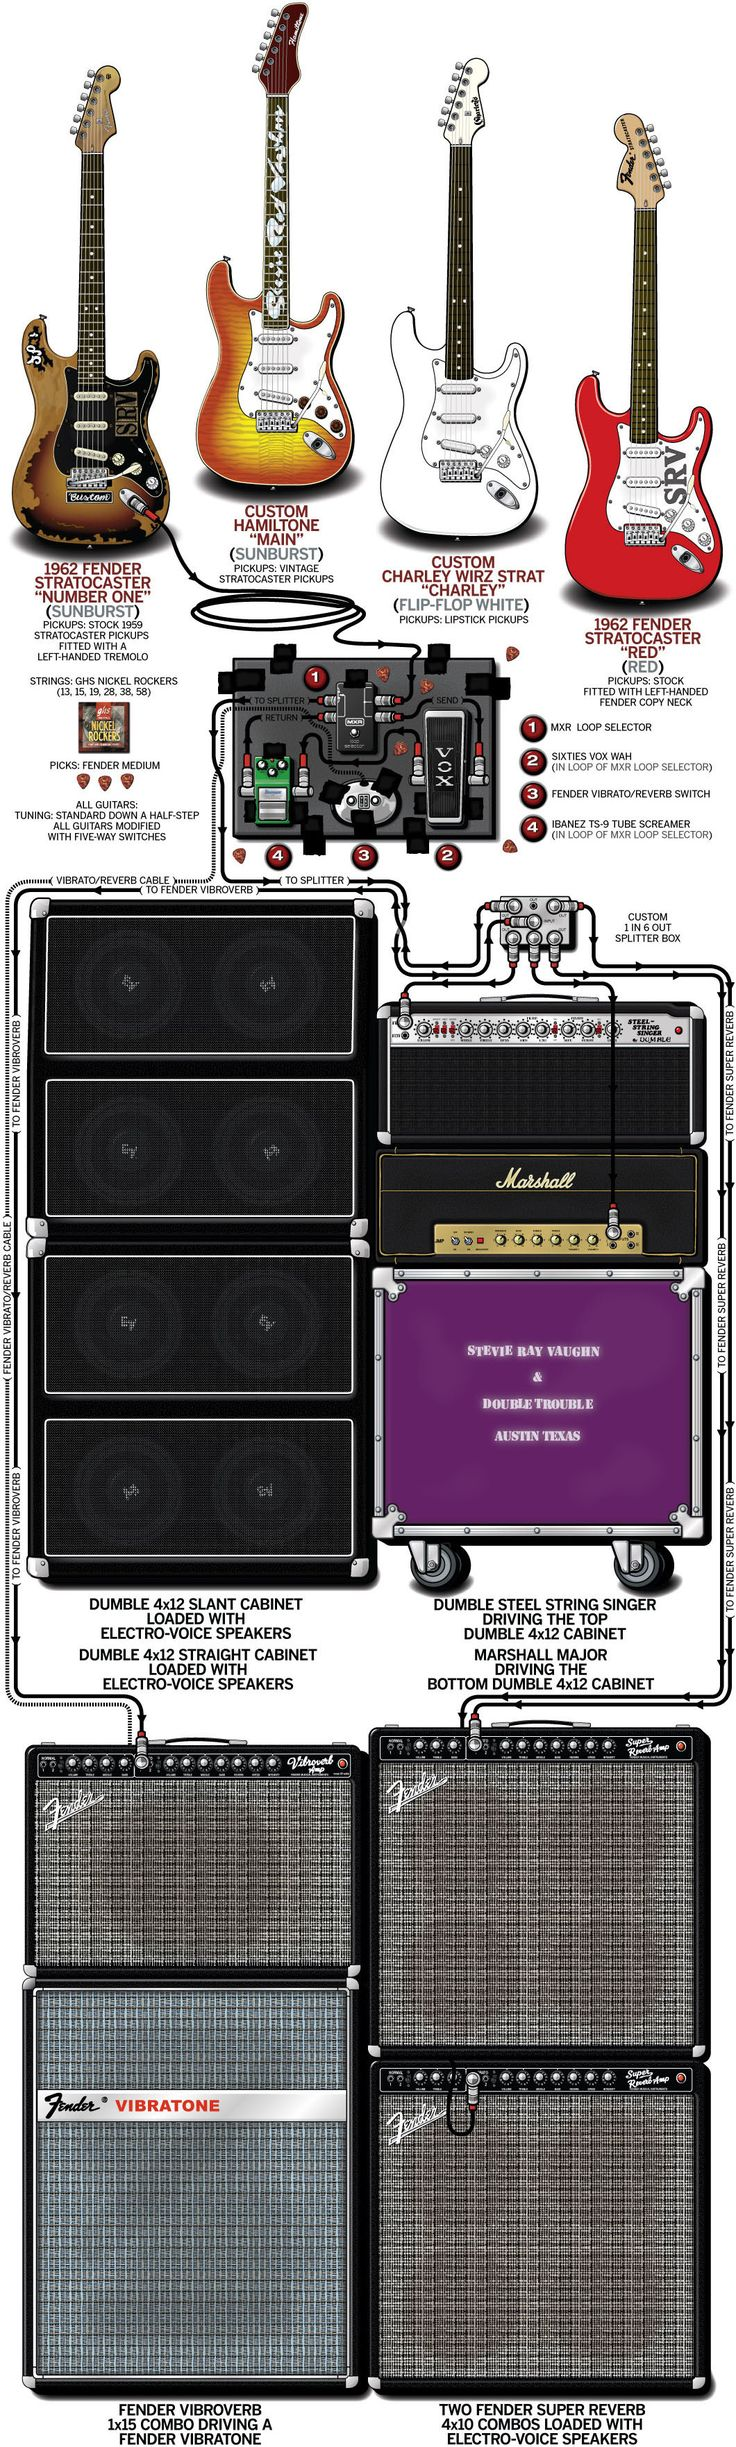 A detailed gear diagram of Stevie Ray Vaughan's 1985 stage setup that traces the signal flow of the equipment in his guitar rig.